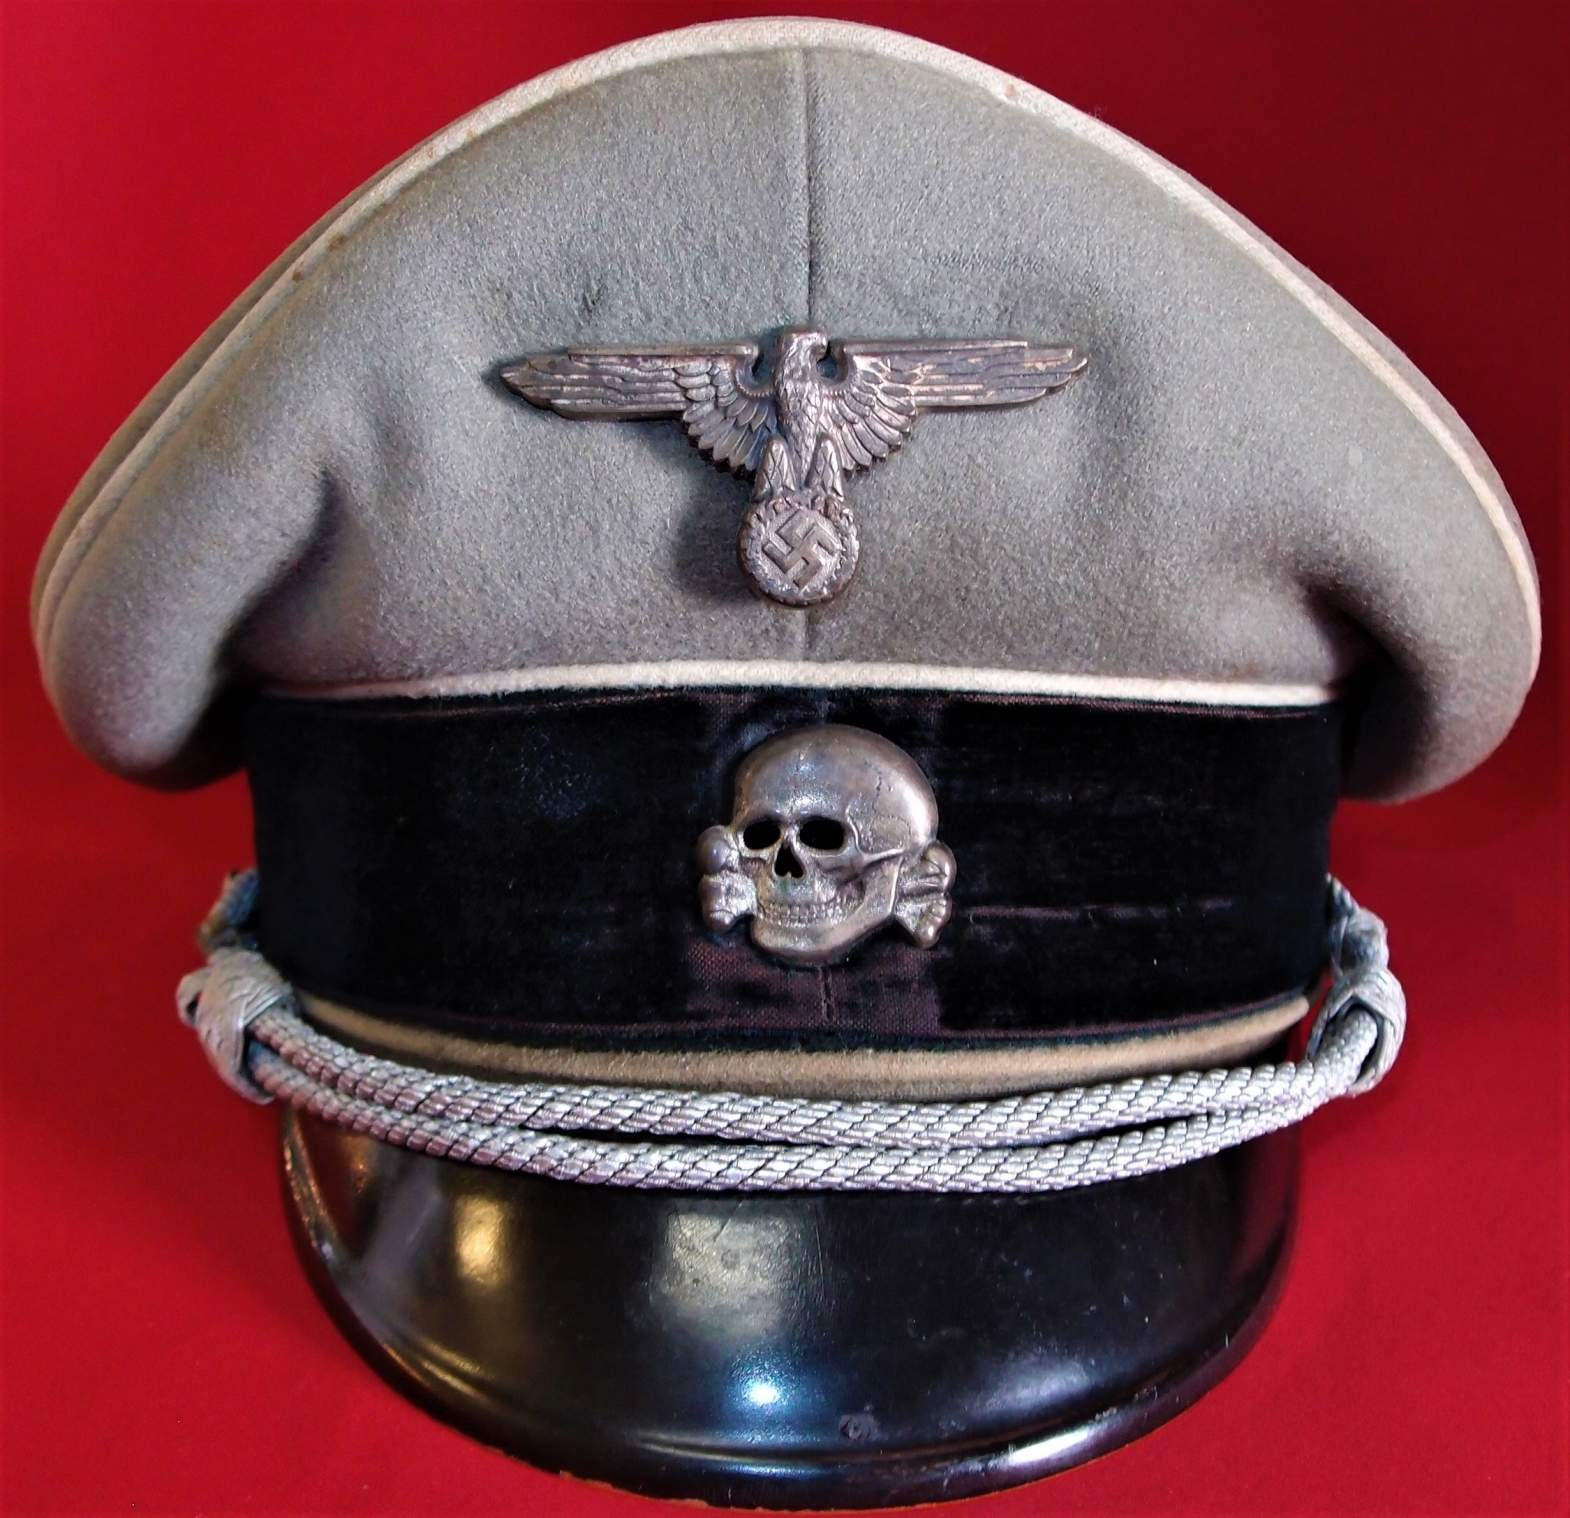 Is this WW2 German Waffen S S  officer's peaked cap